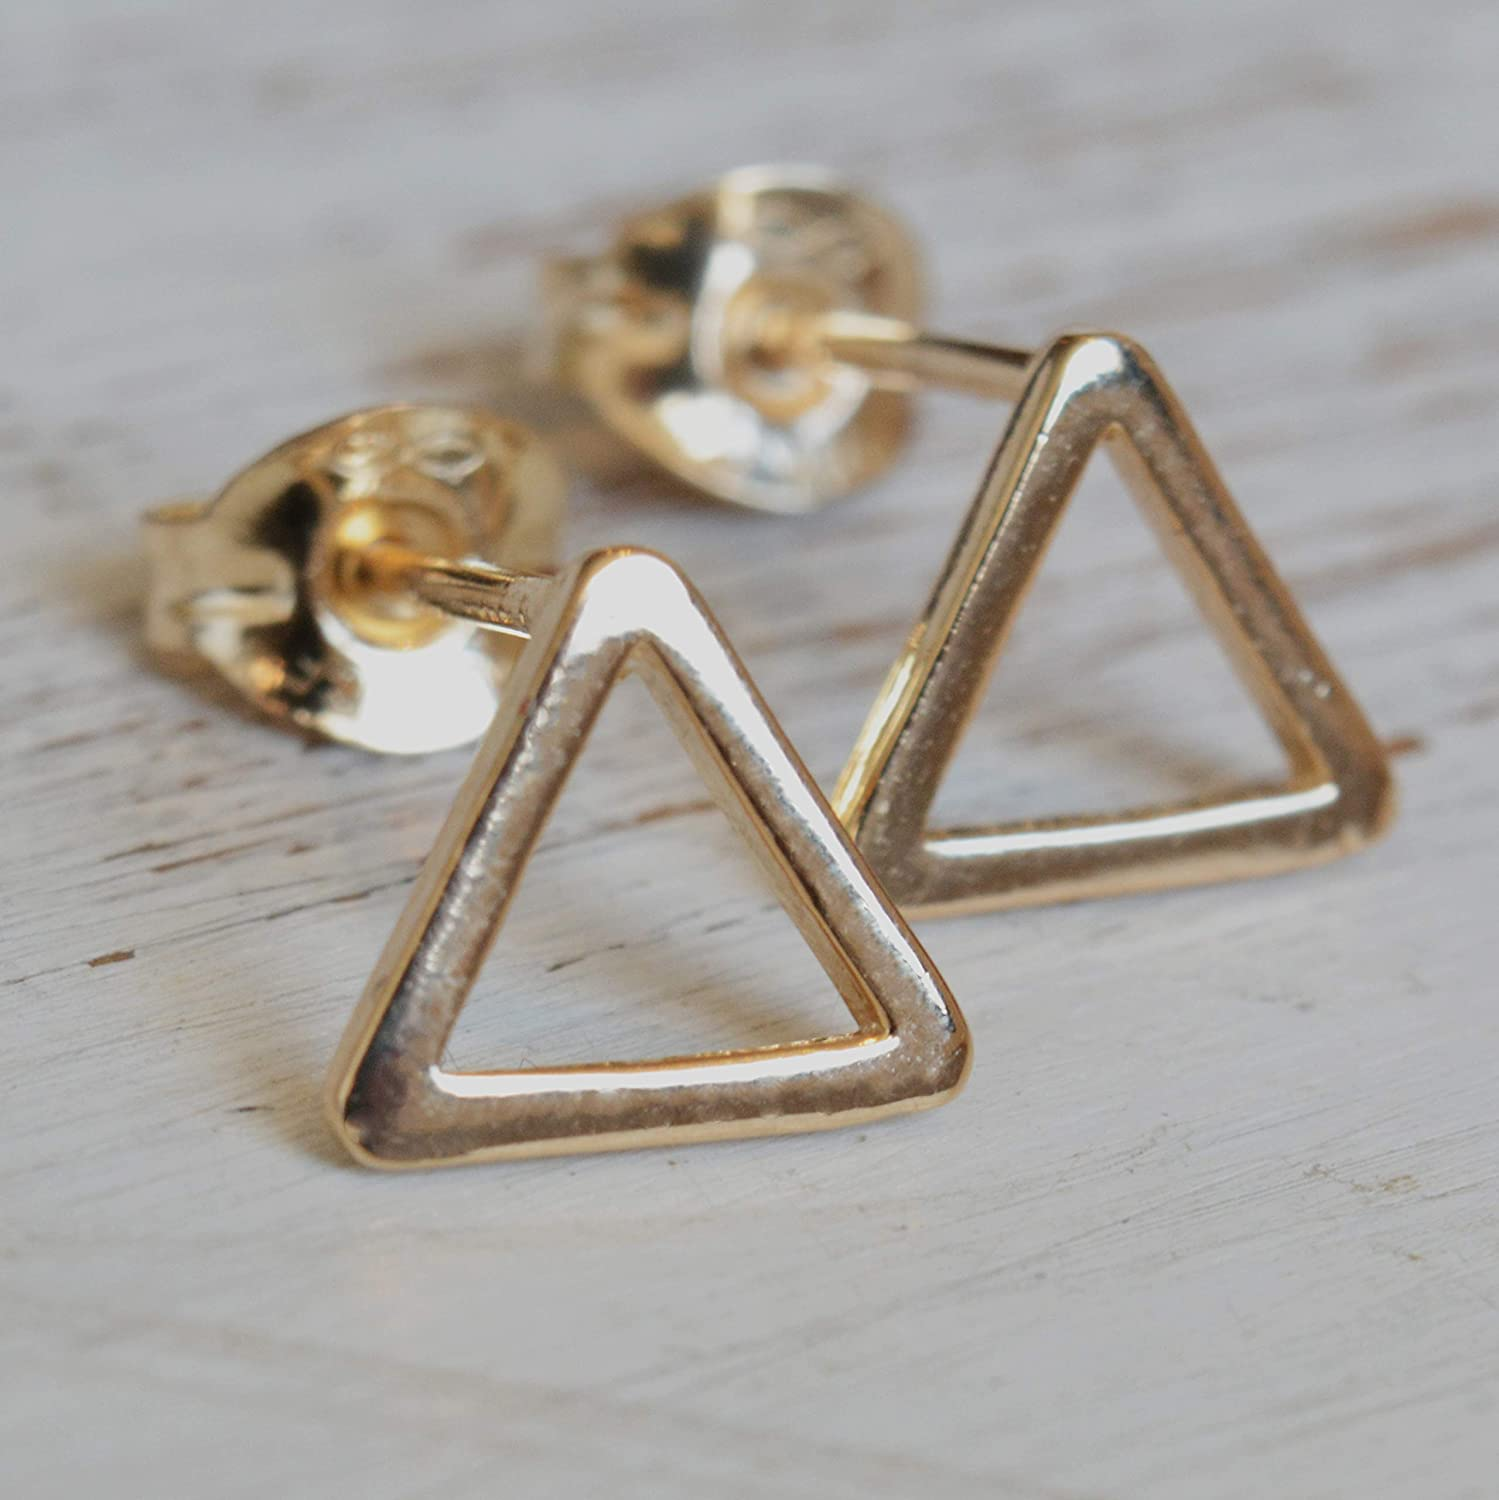 Tiny 8mm Open Triangle Unisex Stud Earrings 14K Gold Filled Jewelry for Men and Women